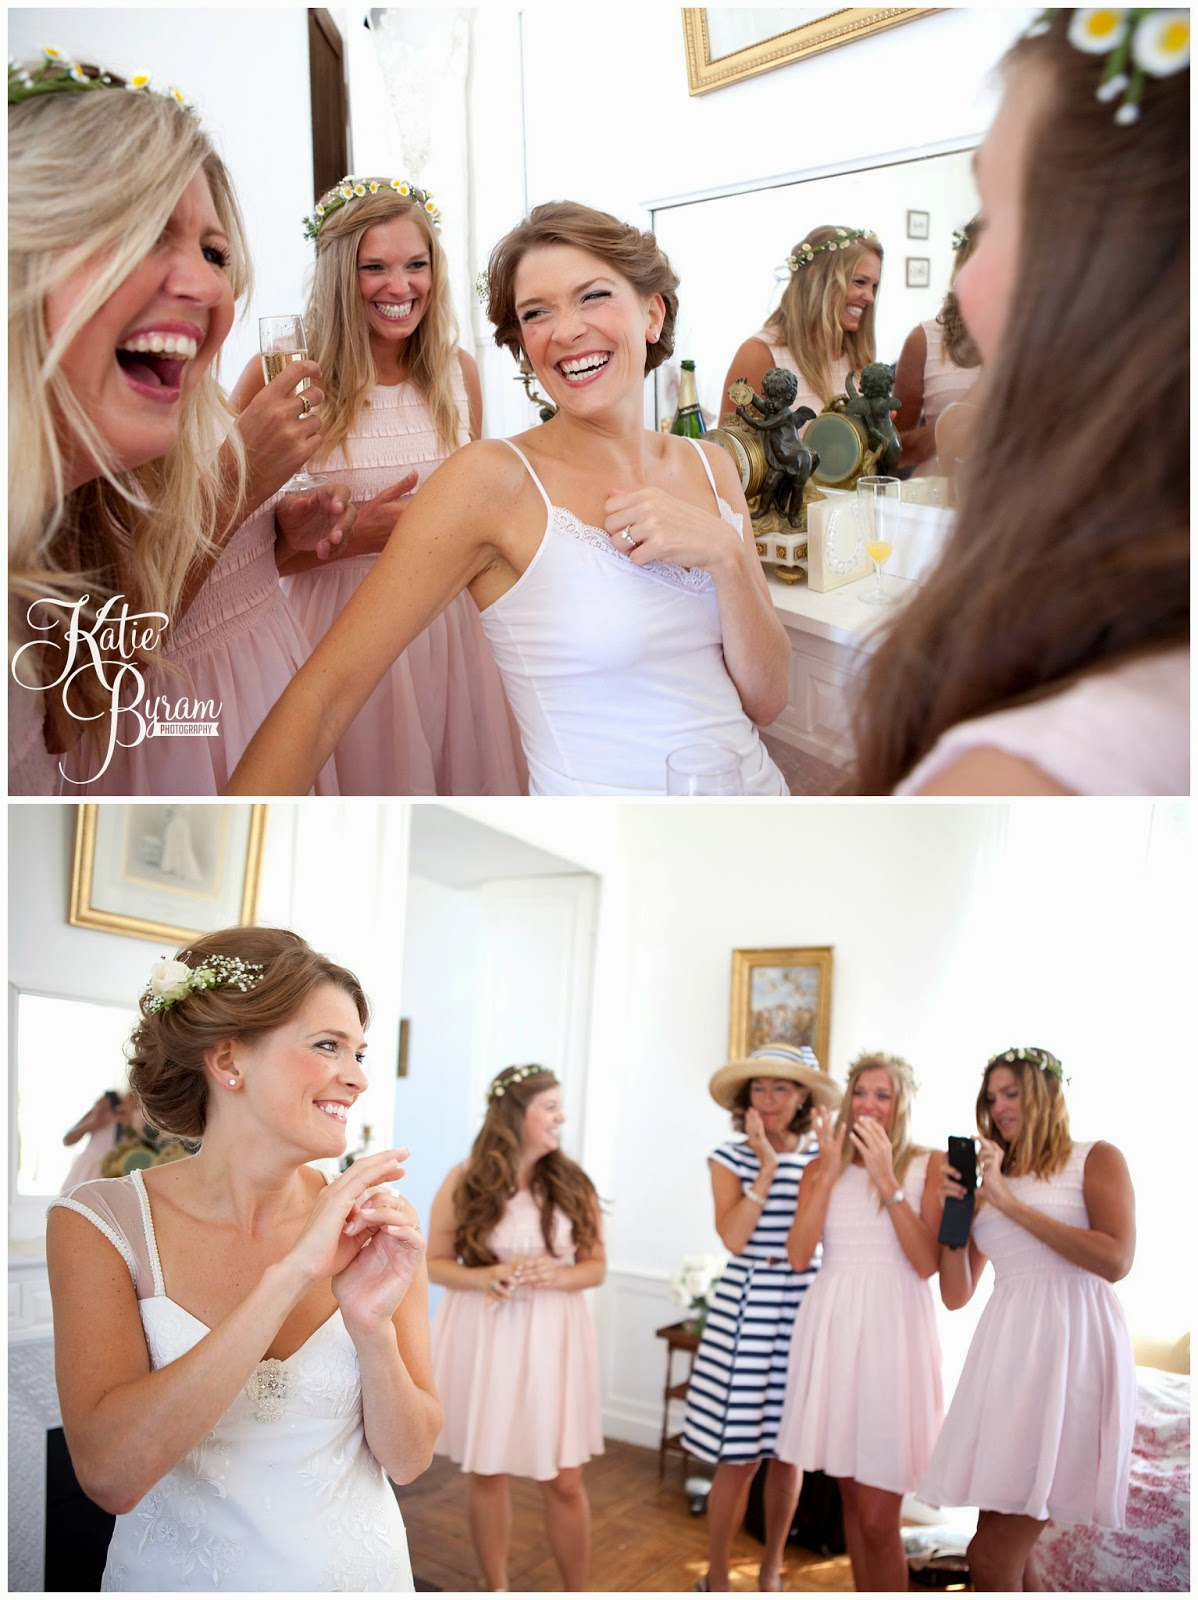 chateau de lacoste wedding, share the honest love, love my dress blog, katie byram photography